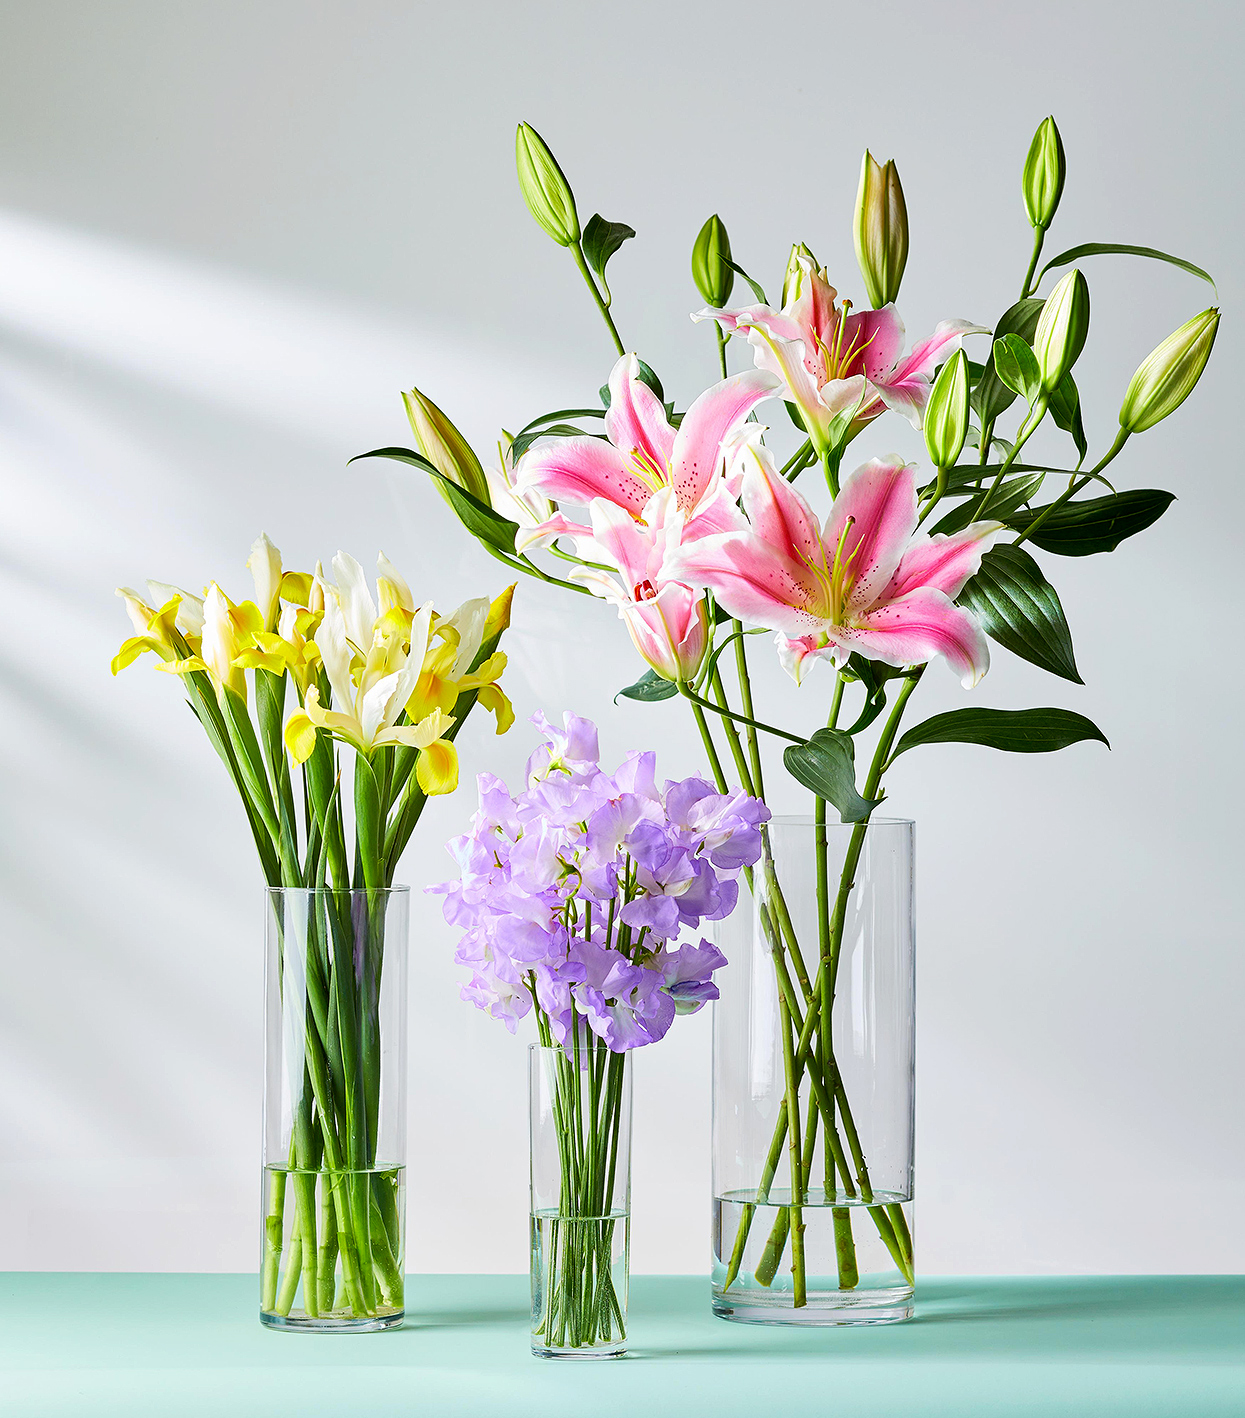 20 Classic Flower Arrangements For Stunning Bouquets At Home Better Homes Gardens